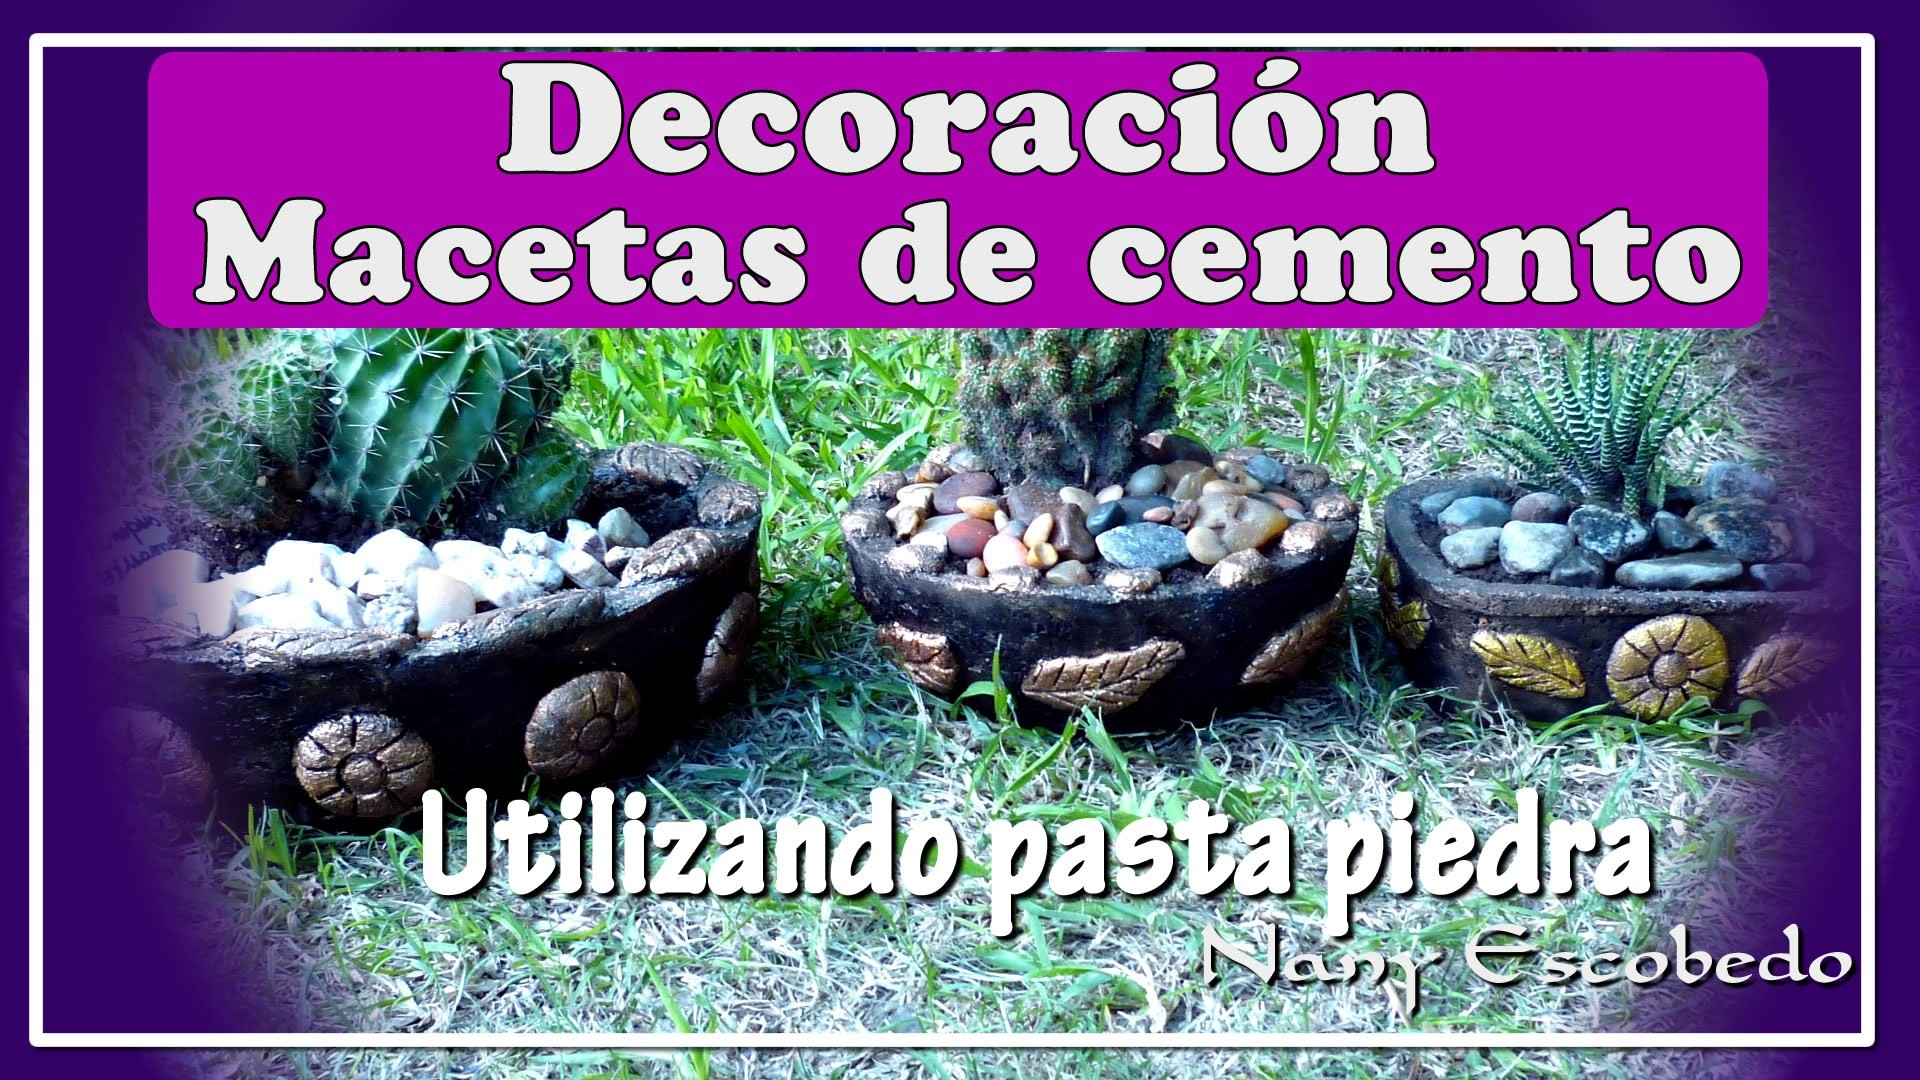 Como Decorar Macetas CÓmo Decorar Macetas De Cemento